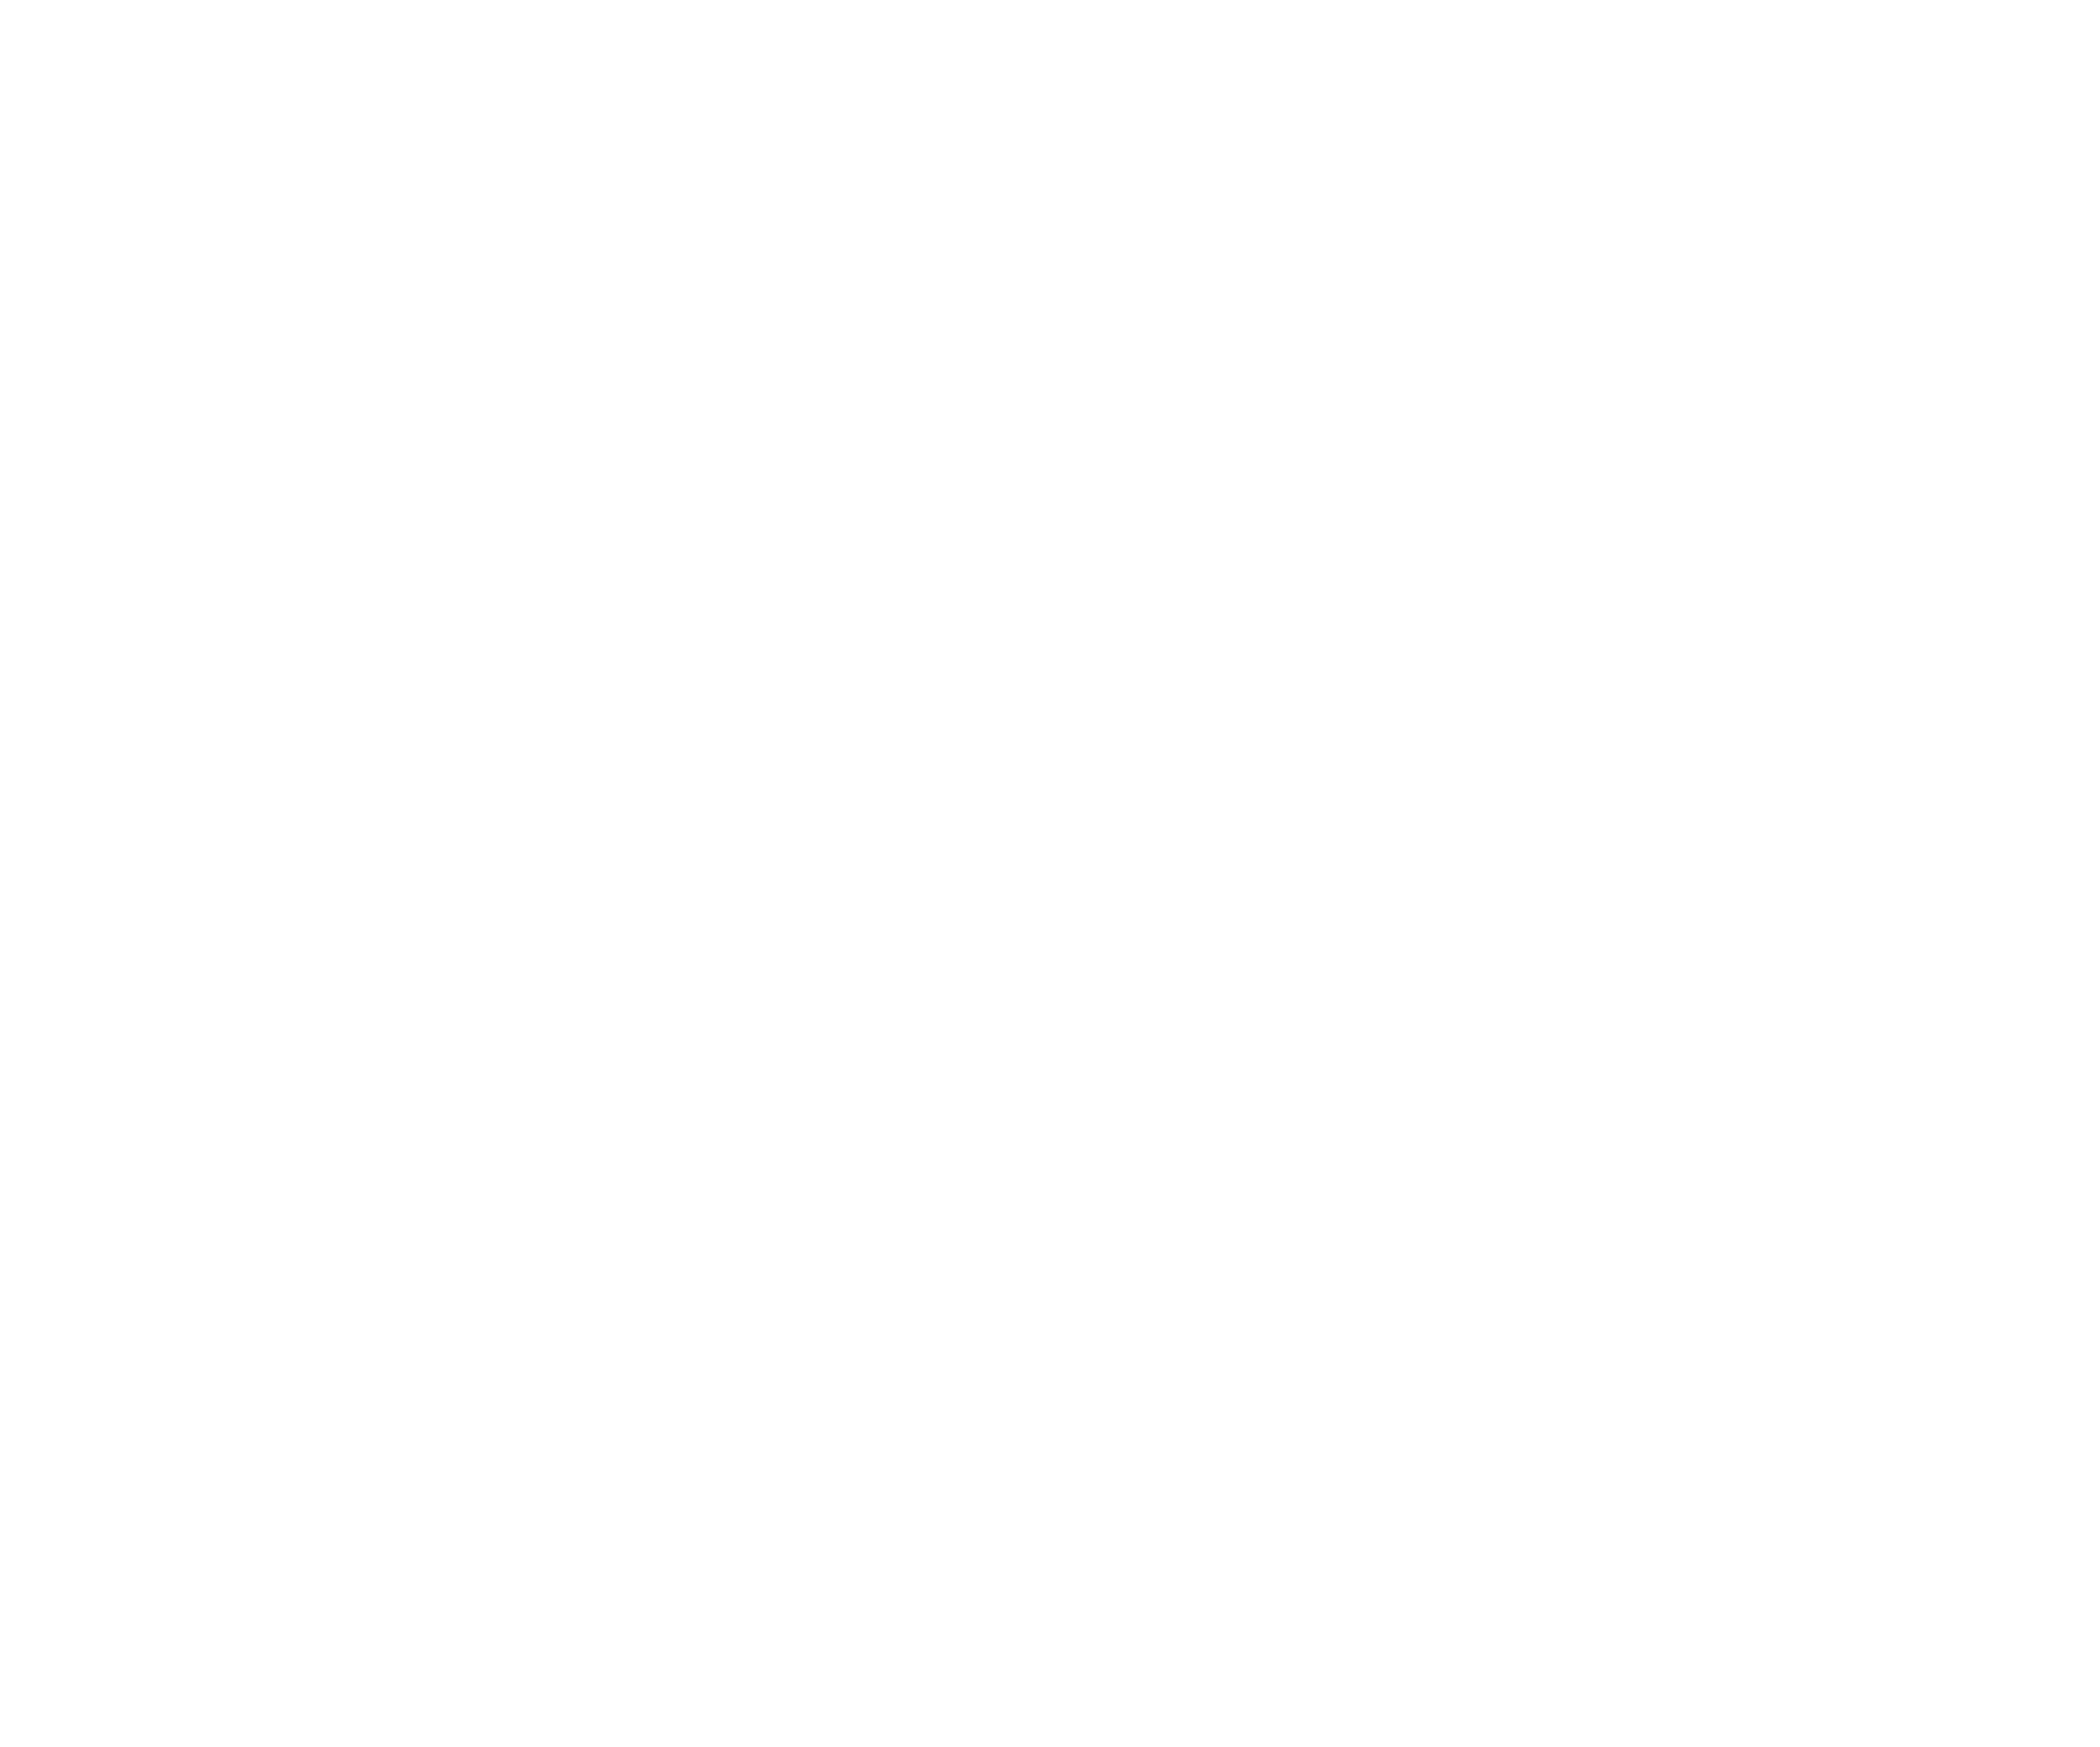 Wolfe_Logotype_&_Icon_White